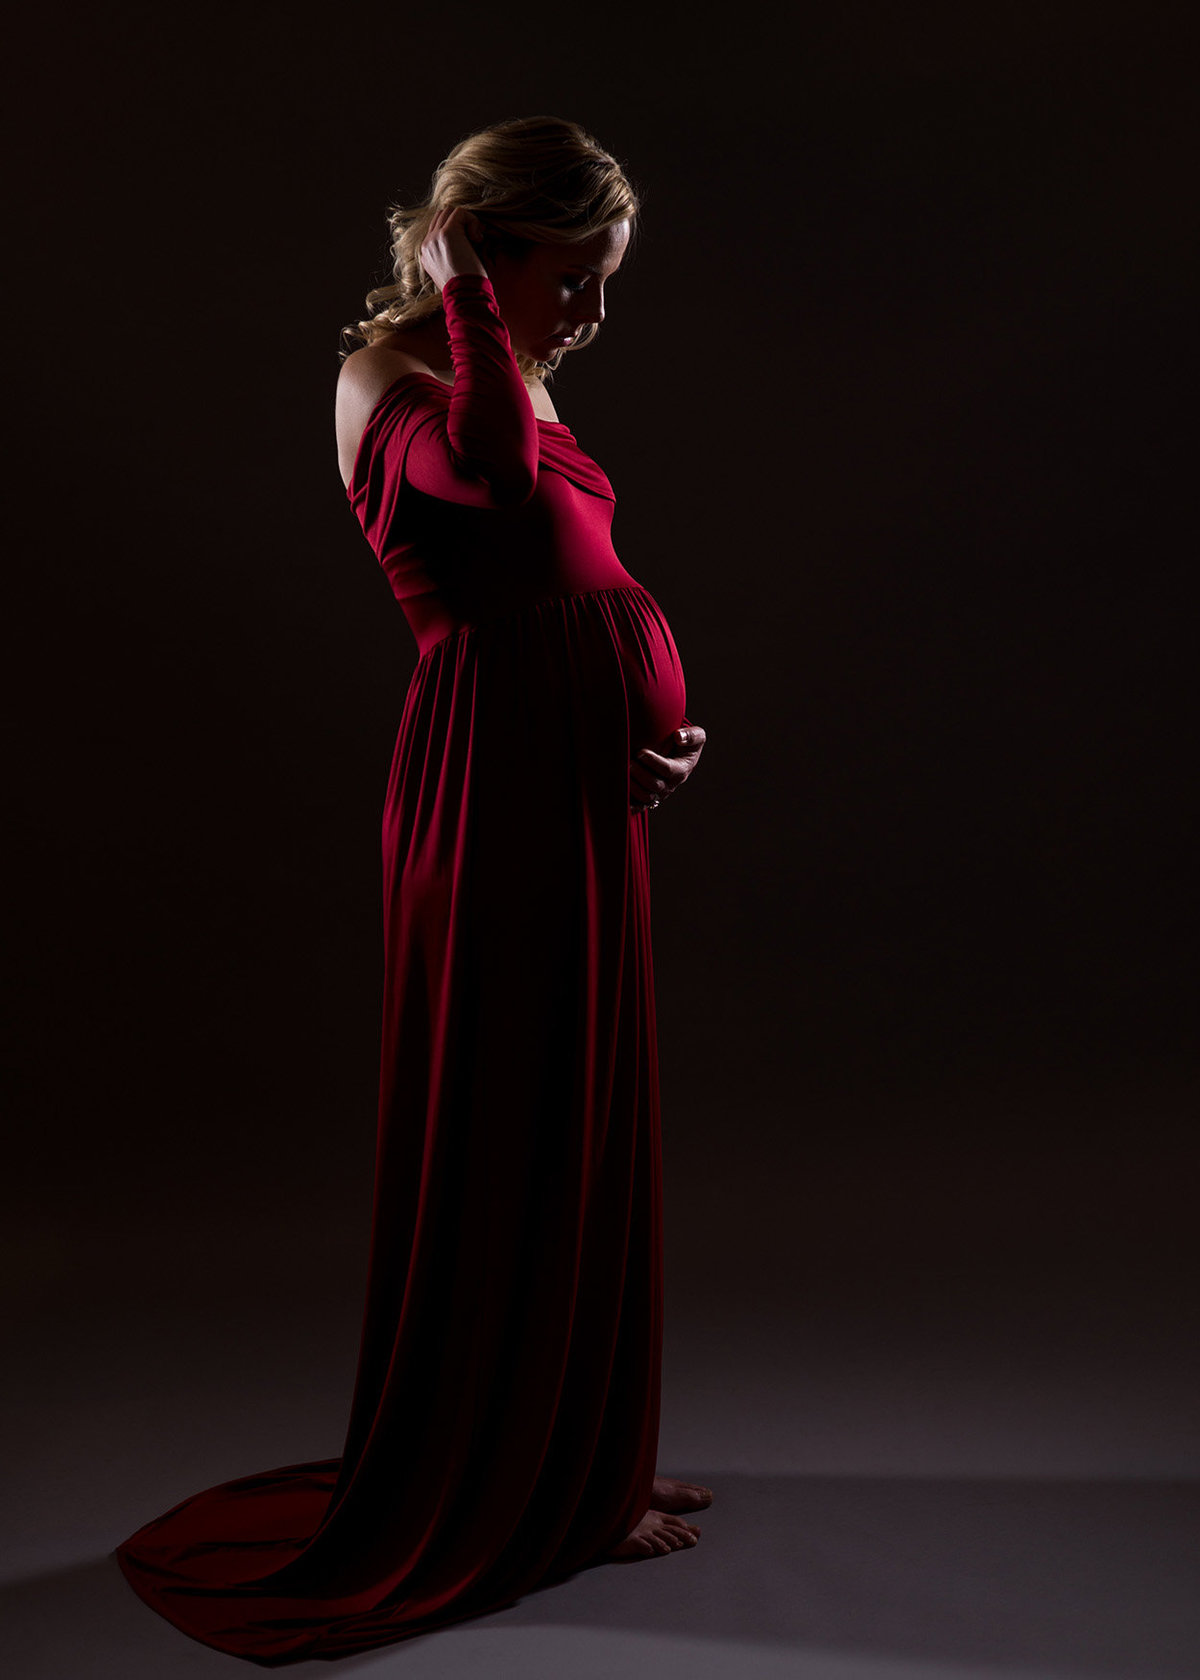 lansing michigan maternity photographer